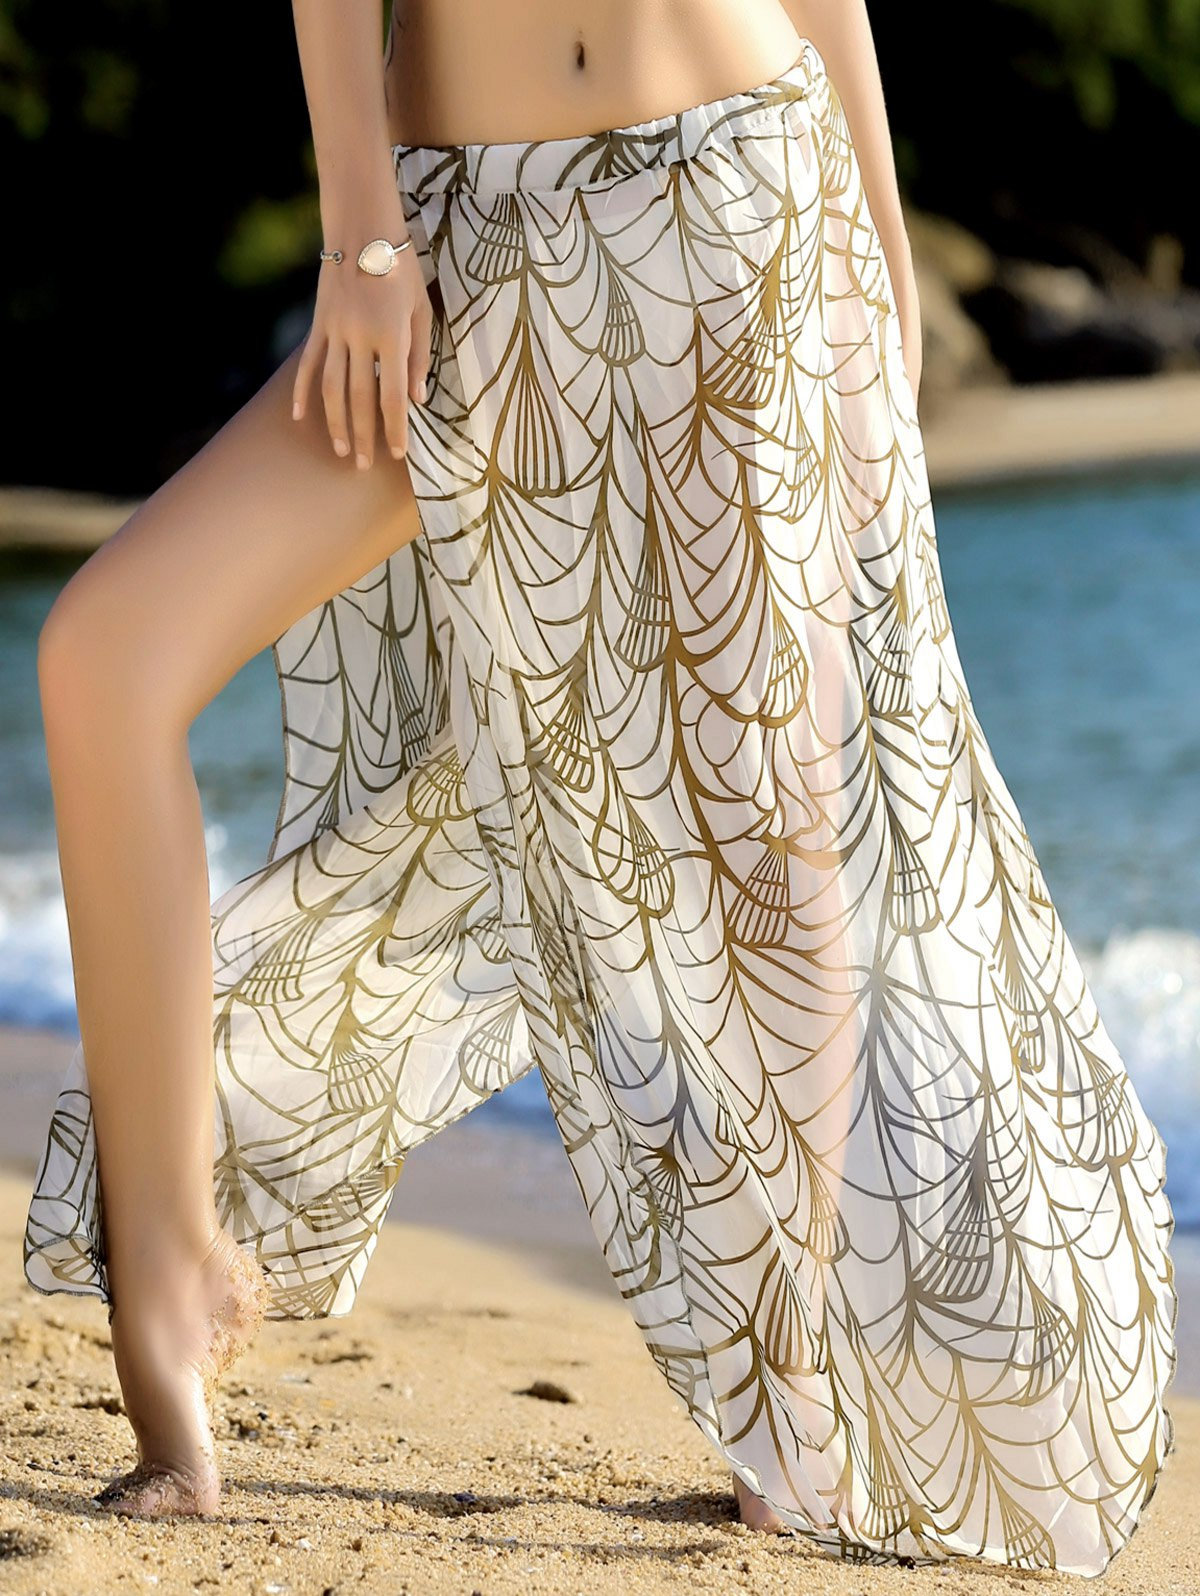 Stylish Women's Print High Slit Cover-Up Skirt - WHITE ONE SIZE(FIT SIZE XS TO M)